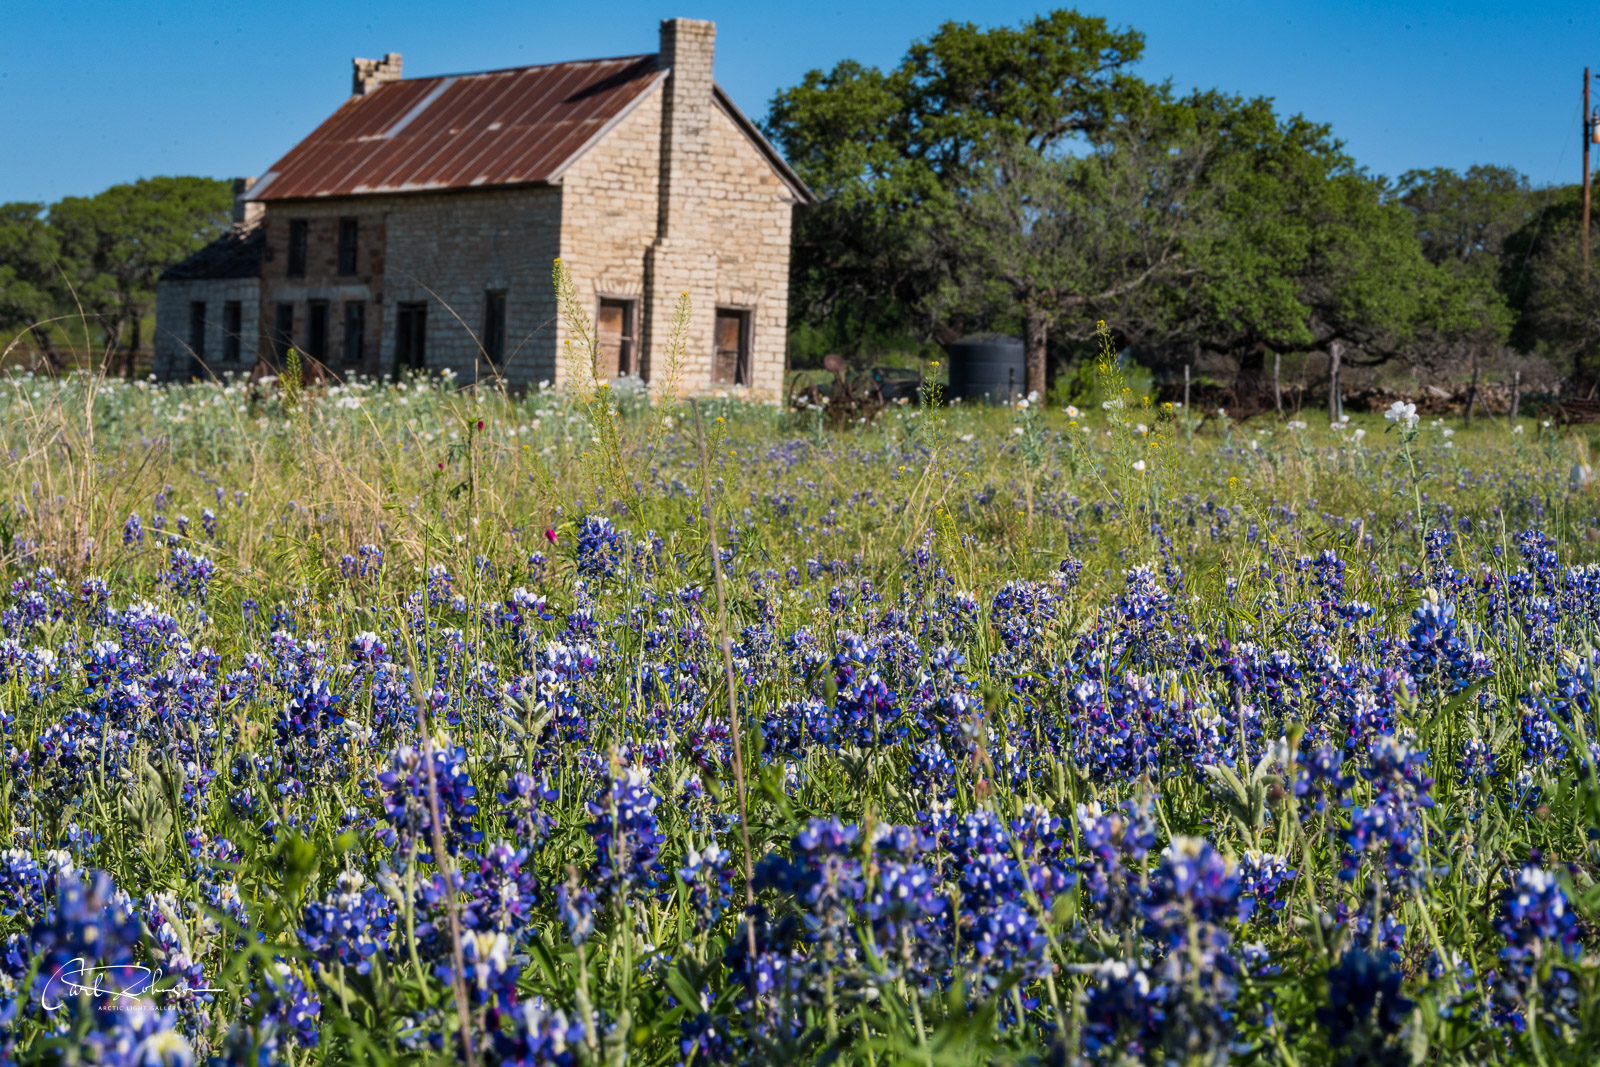 A patch of bluebonnets fills the foreground with an abandoned farm house in the distance near Marble Falls, Texas.